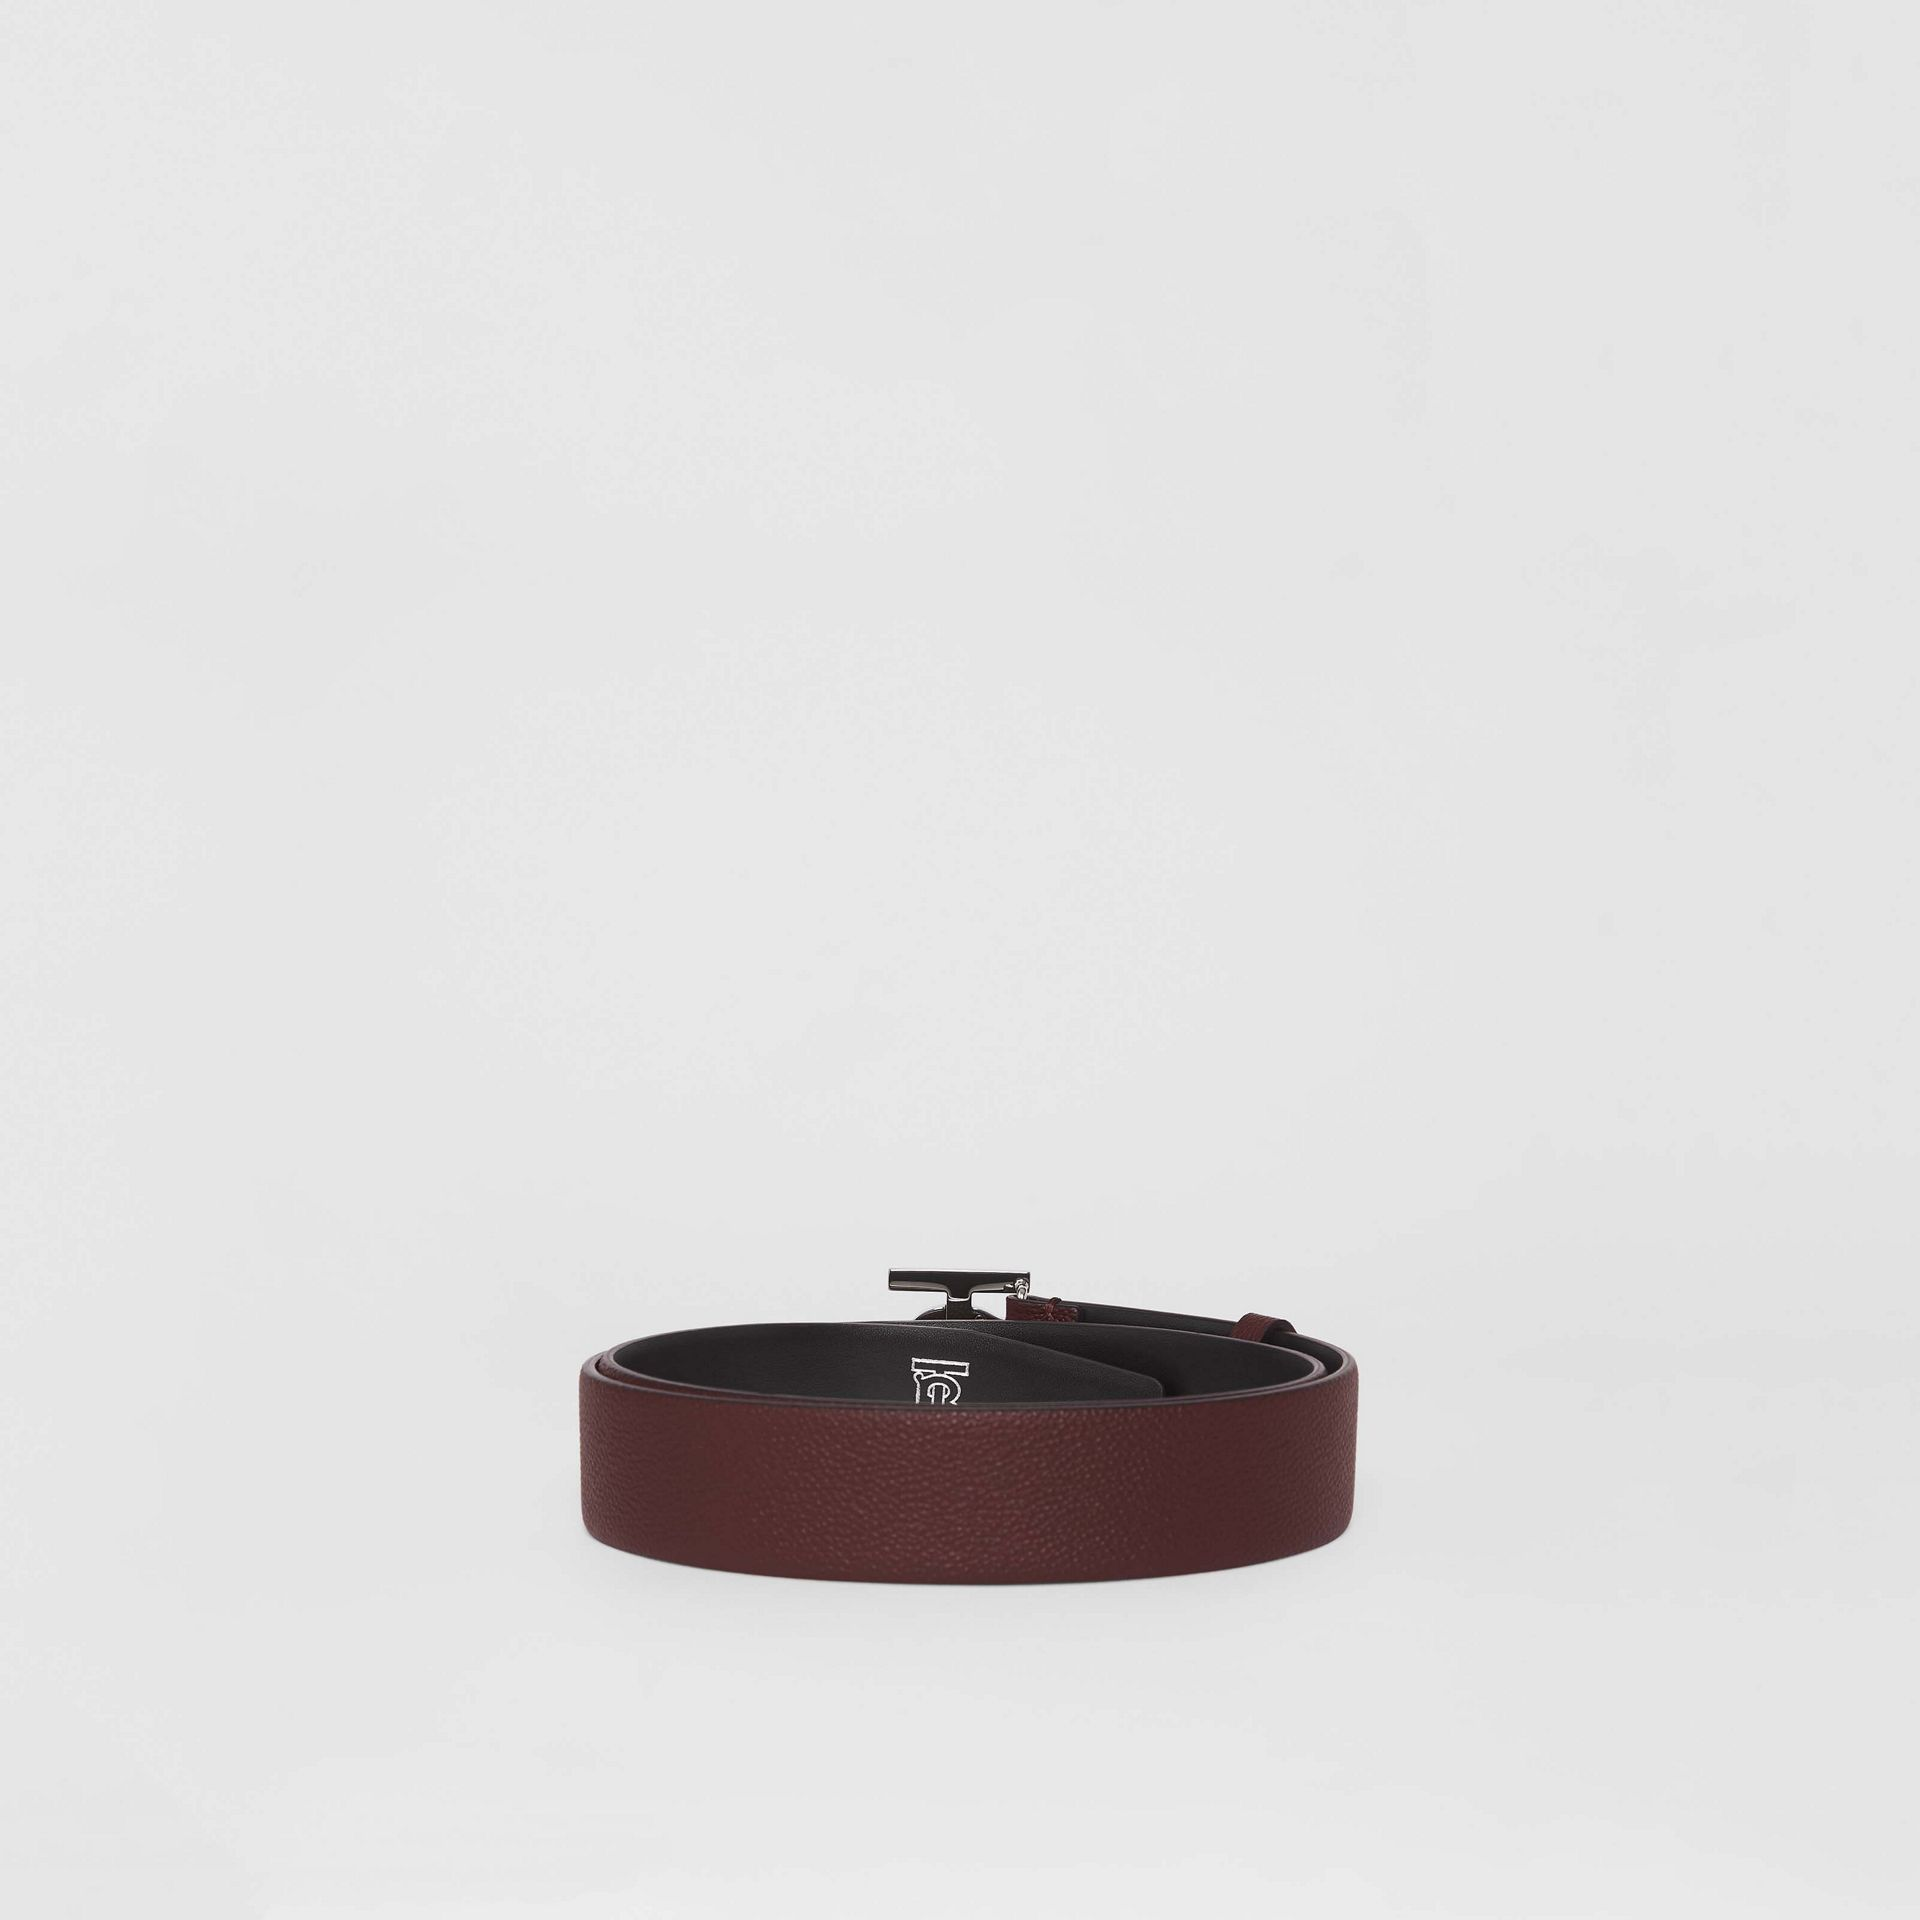 Monogram Motif Leather Belt in Oxblood - Men | Burberry - gallery image 4